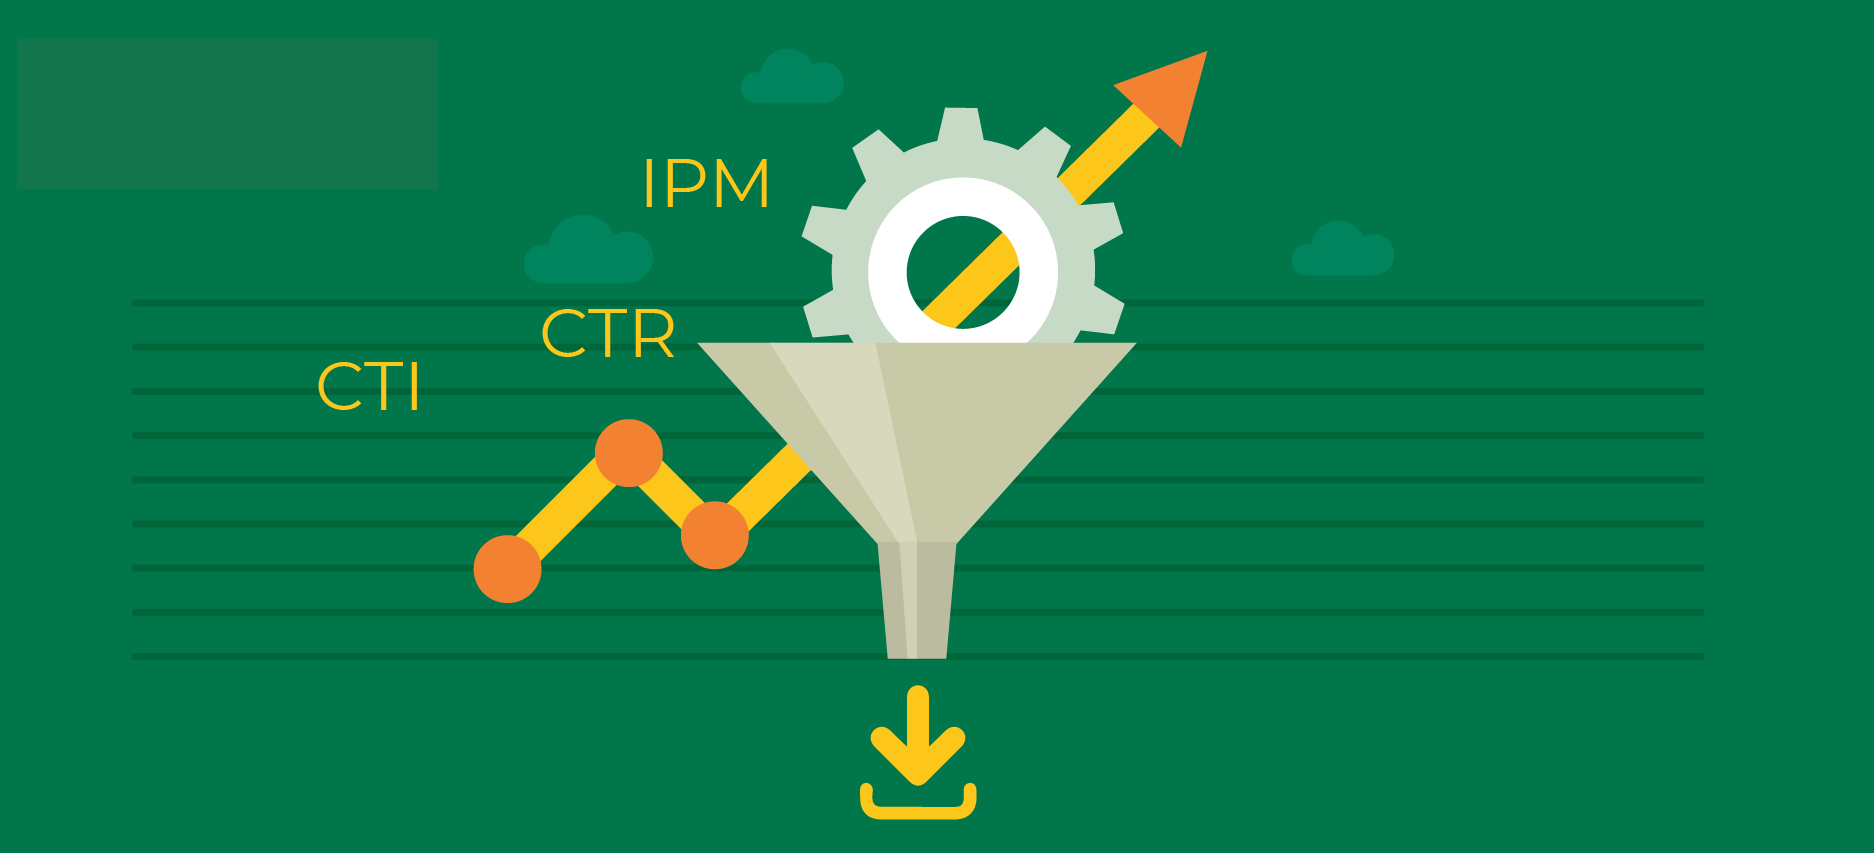 CPI and IPM in mobile gaming marketing